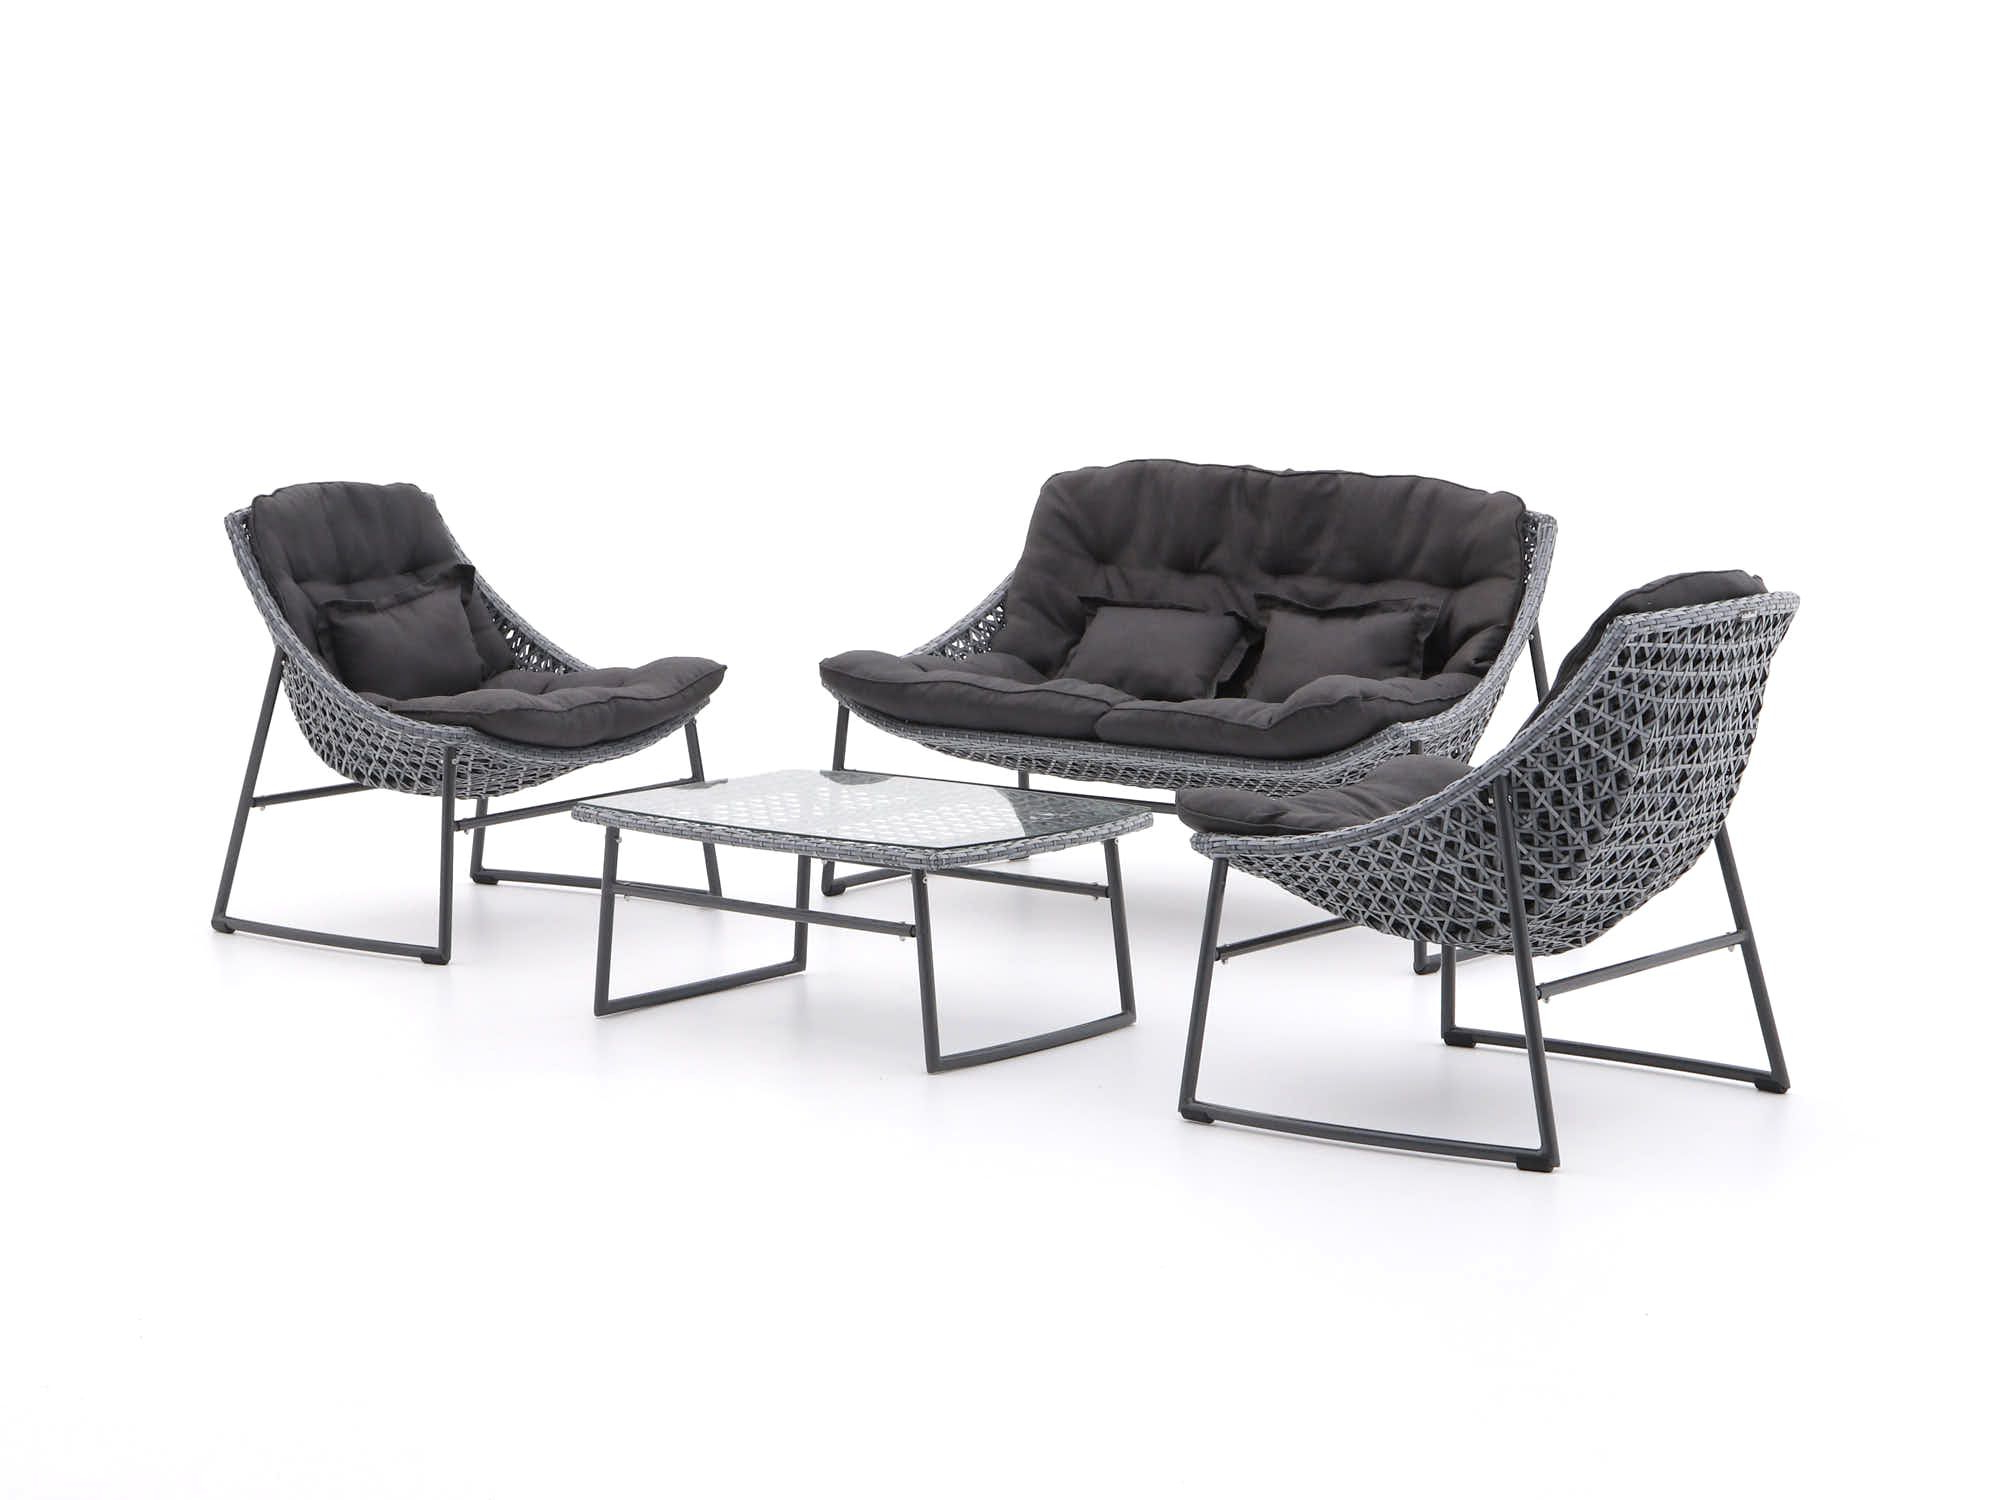 Repp Patio Sofas With Cushion Within Newest Manifesto Novara Sessel Sofa Lounge Set 4 Teilig (View 10 of 25)